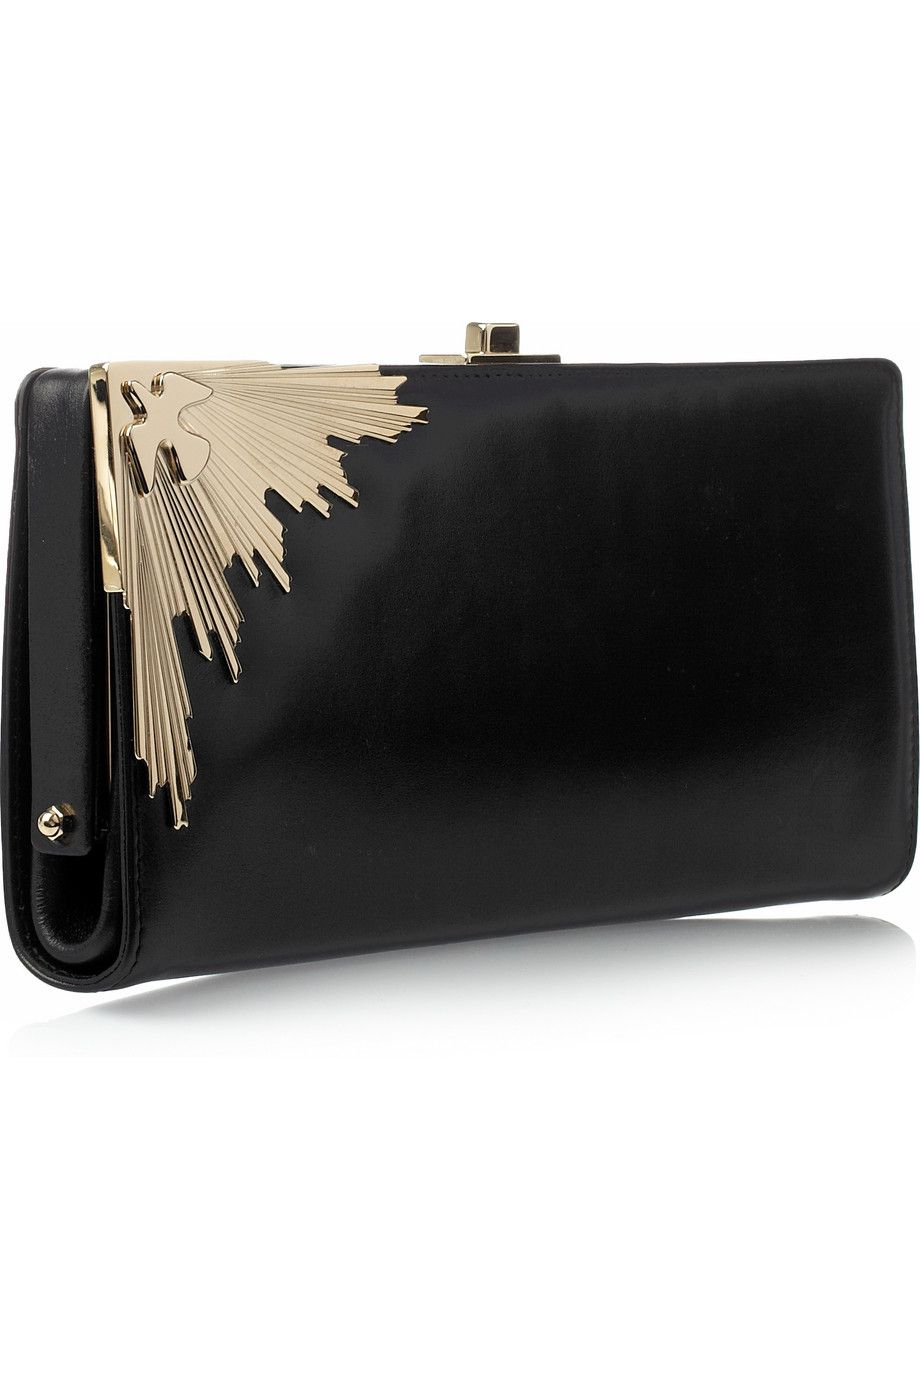 JASON WU  constance leather clutch